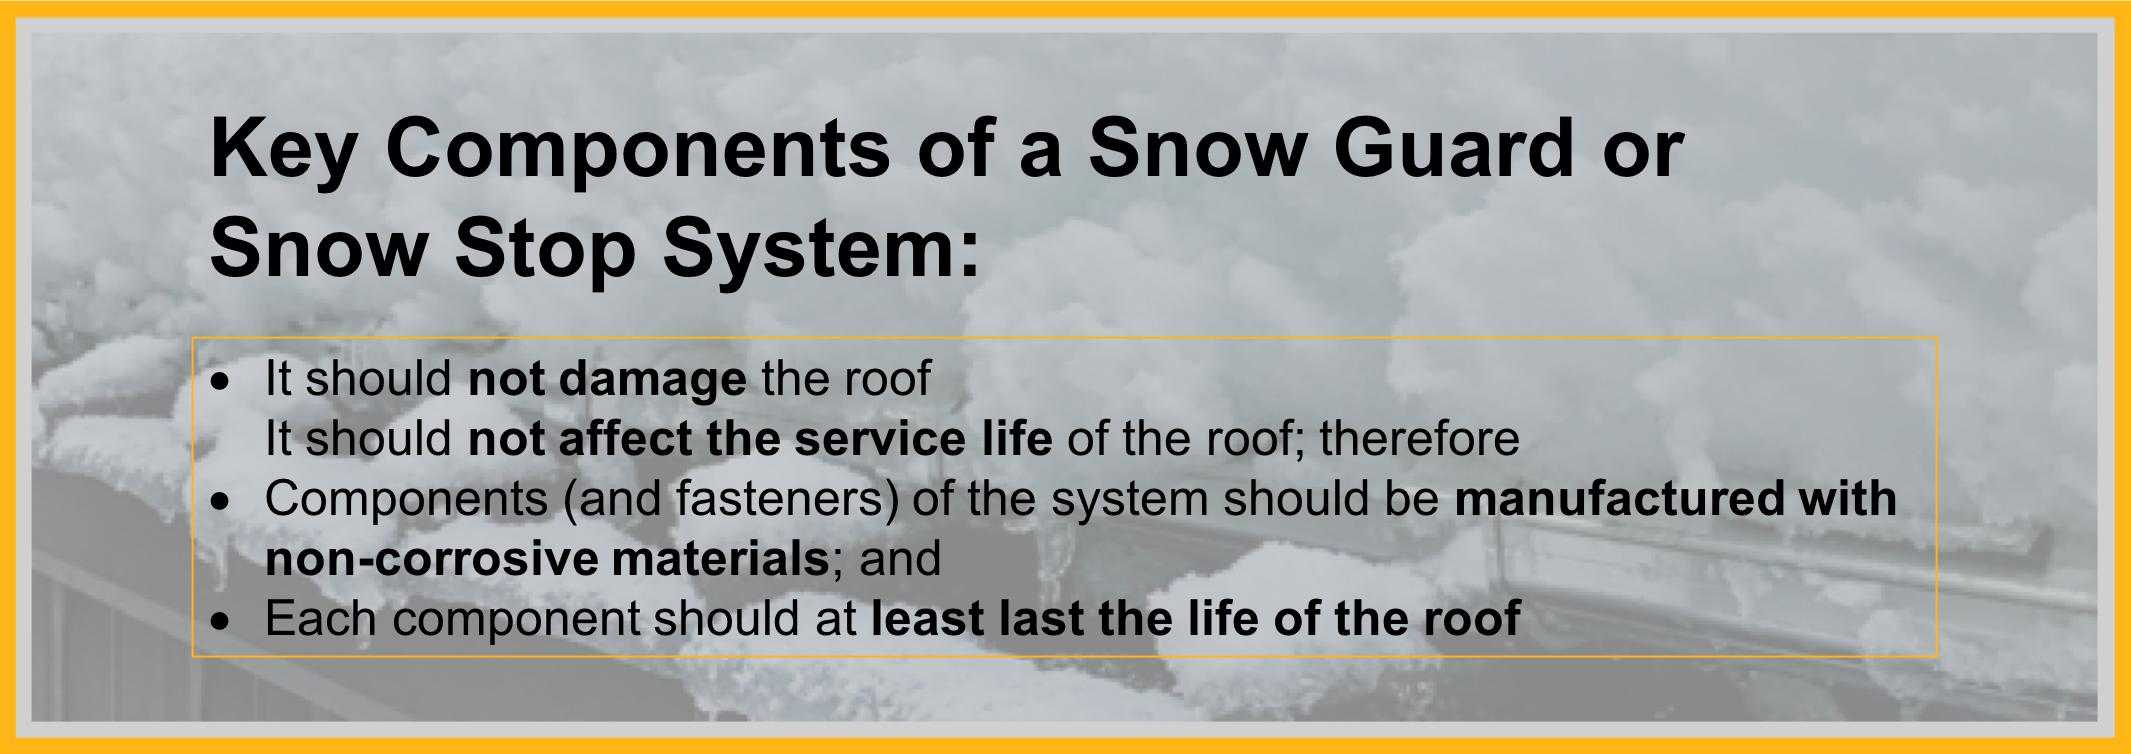 Components of a Snow Guard or Snow Stop System